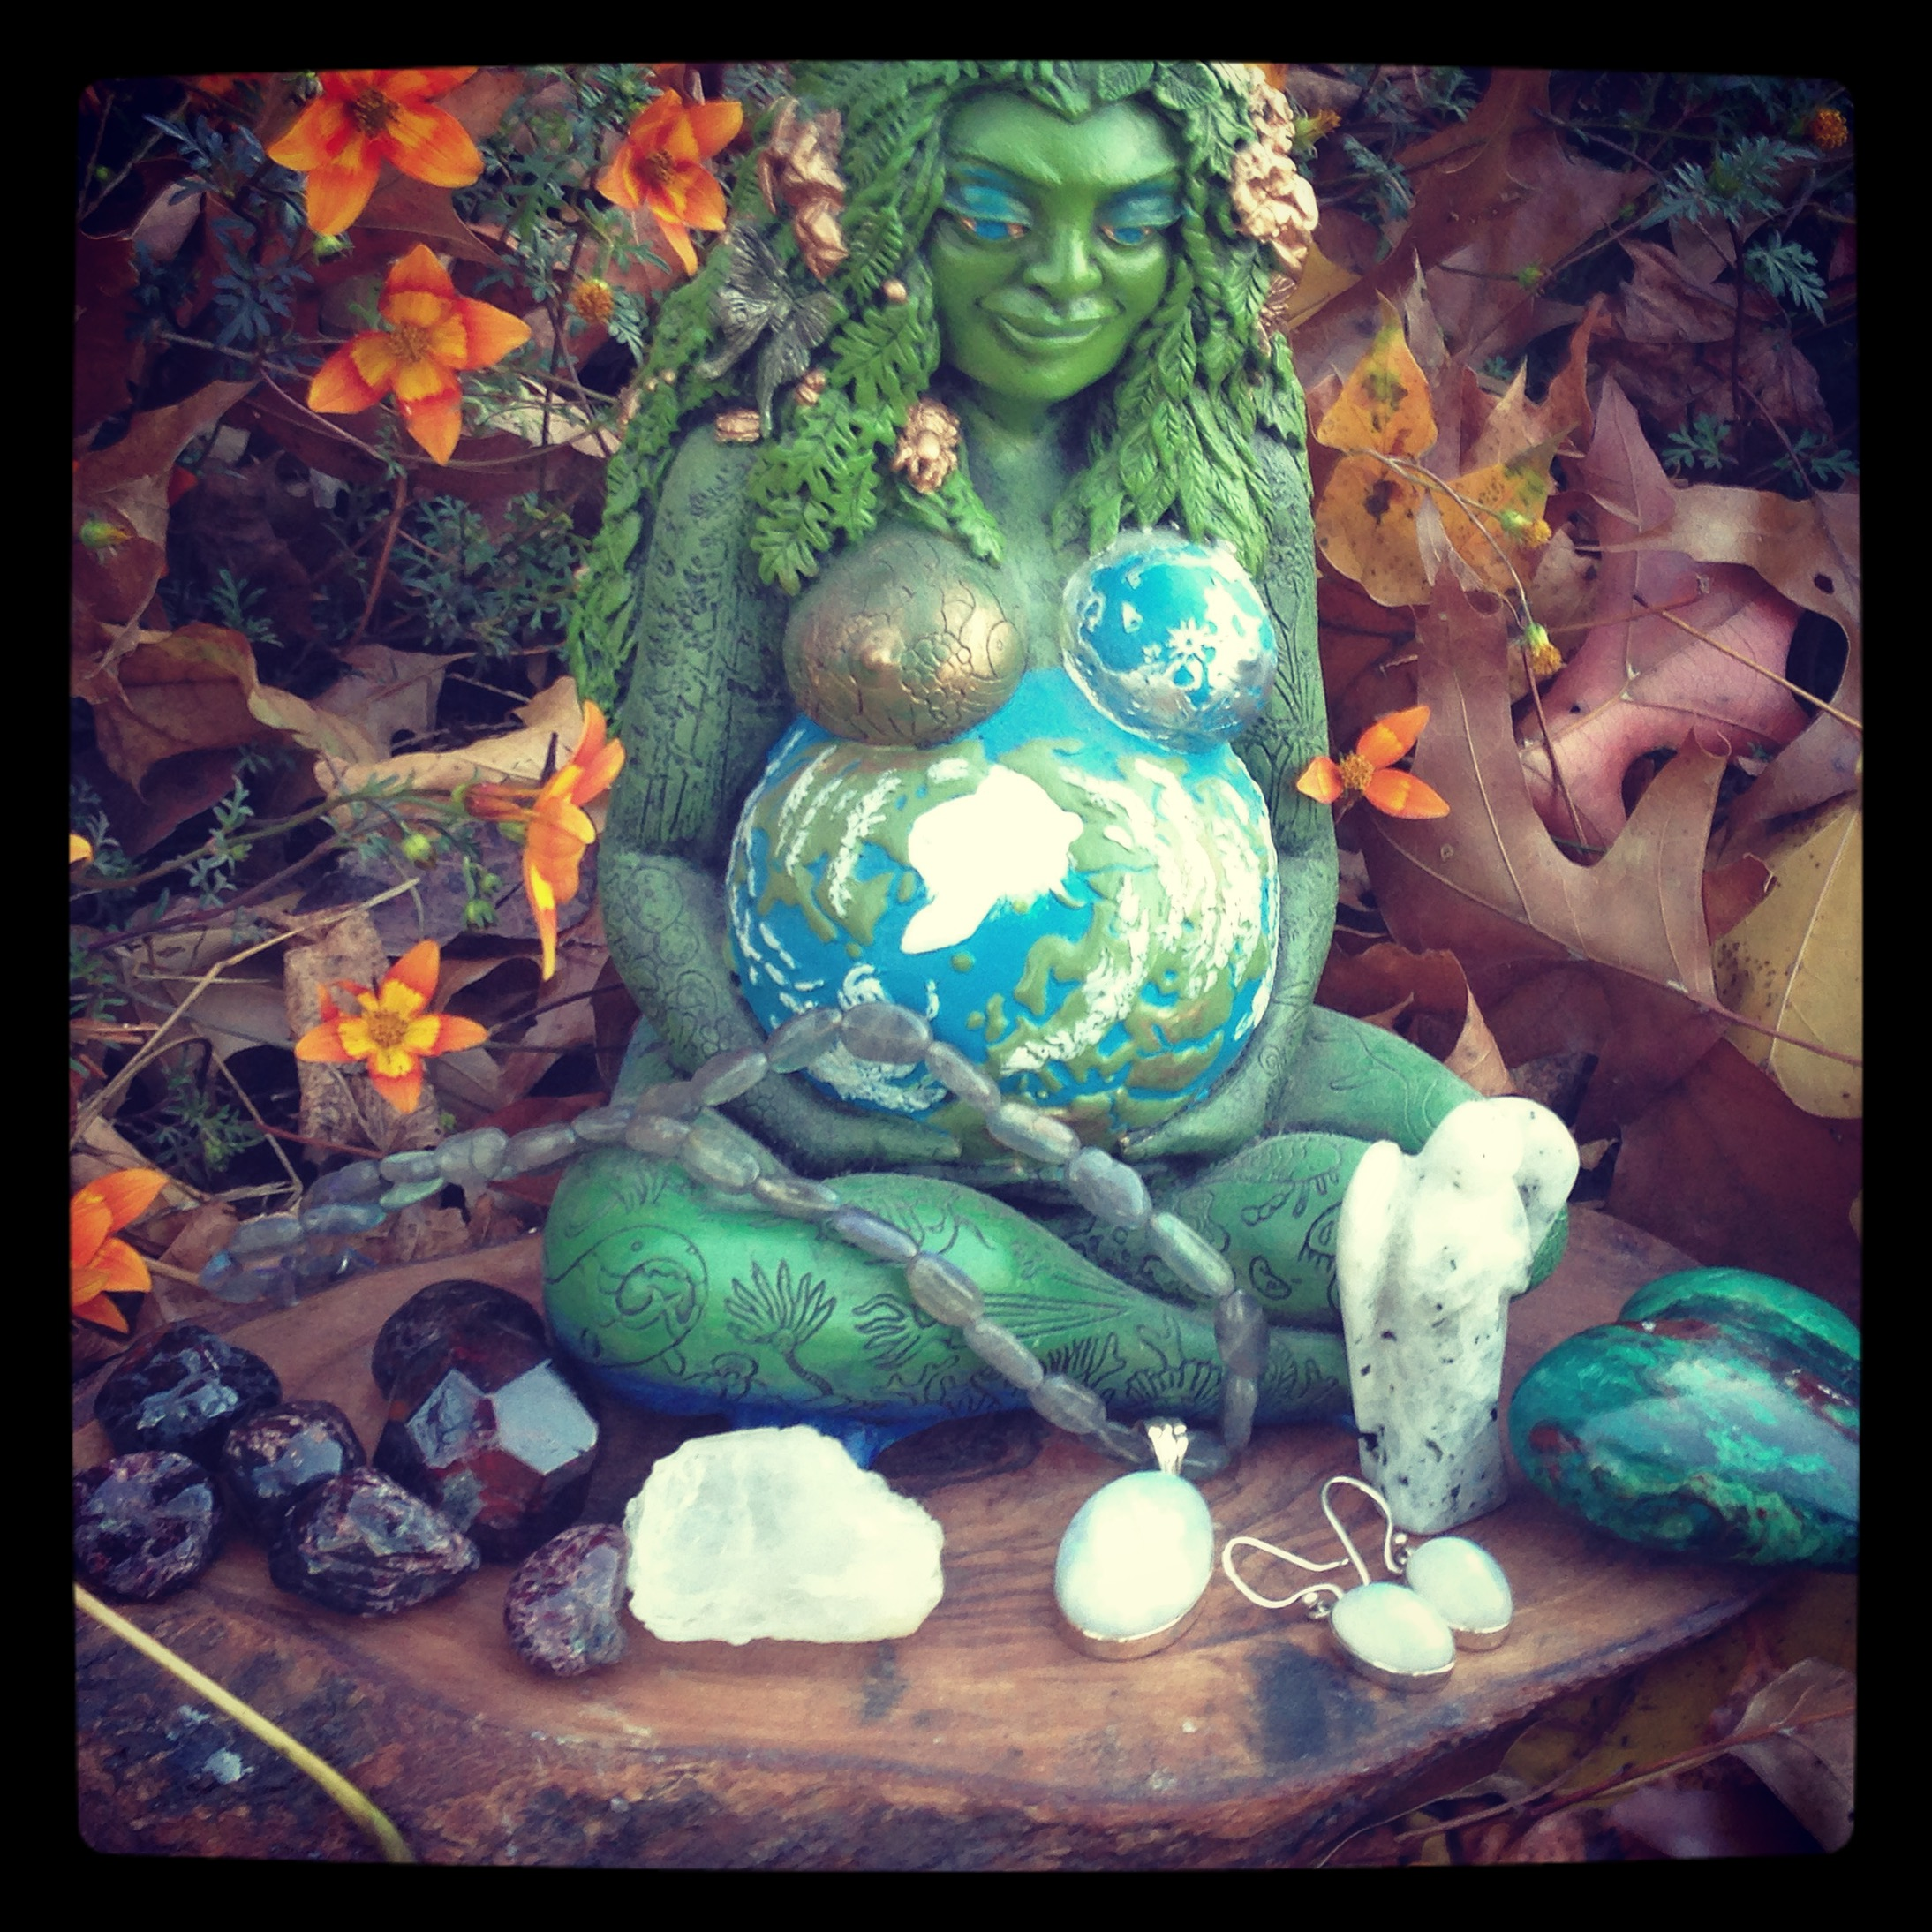 My laboring bag will include from Left to right, Garnet, Petalite, Moonstone pendant on Labradorite and earrings, Moonstone Angel gifted to me from Peter Jarvis of L.A. Crystal Energies, and my Chrysocolla heart sitting in front of my beautiful Gaia statue given to me by my husband.